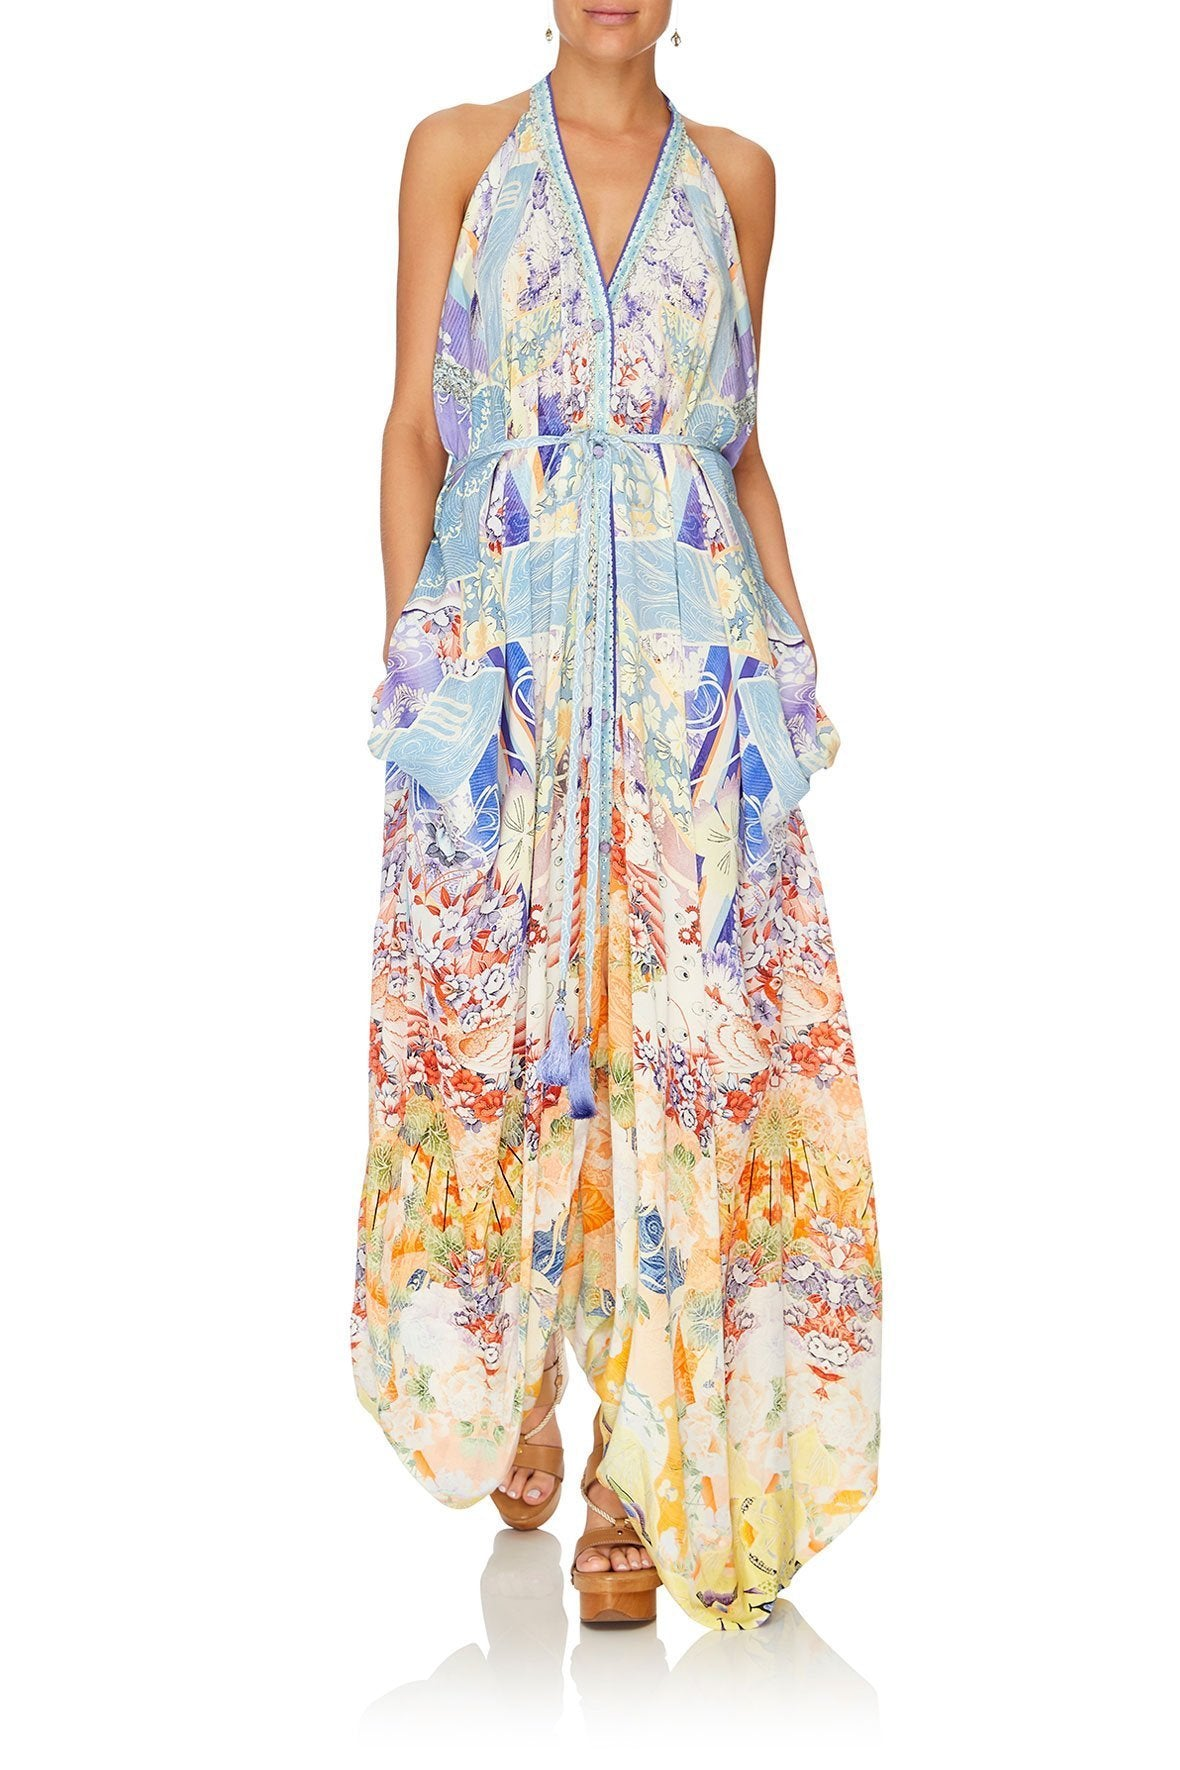 JUMPSUIT WITH DROP CROTCH PANT GIRL IN THE KIMONO